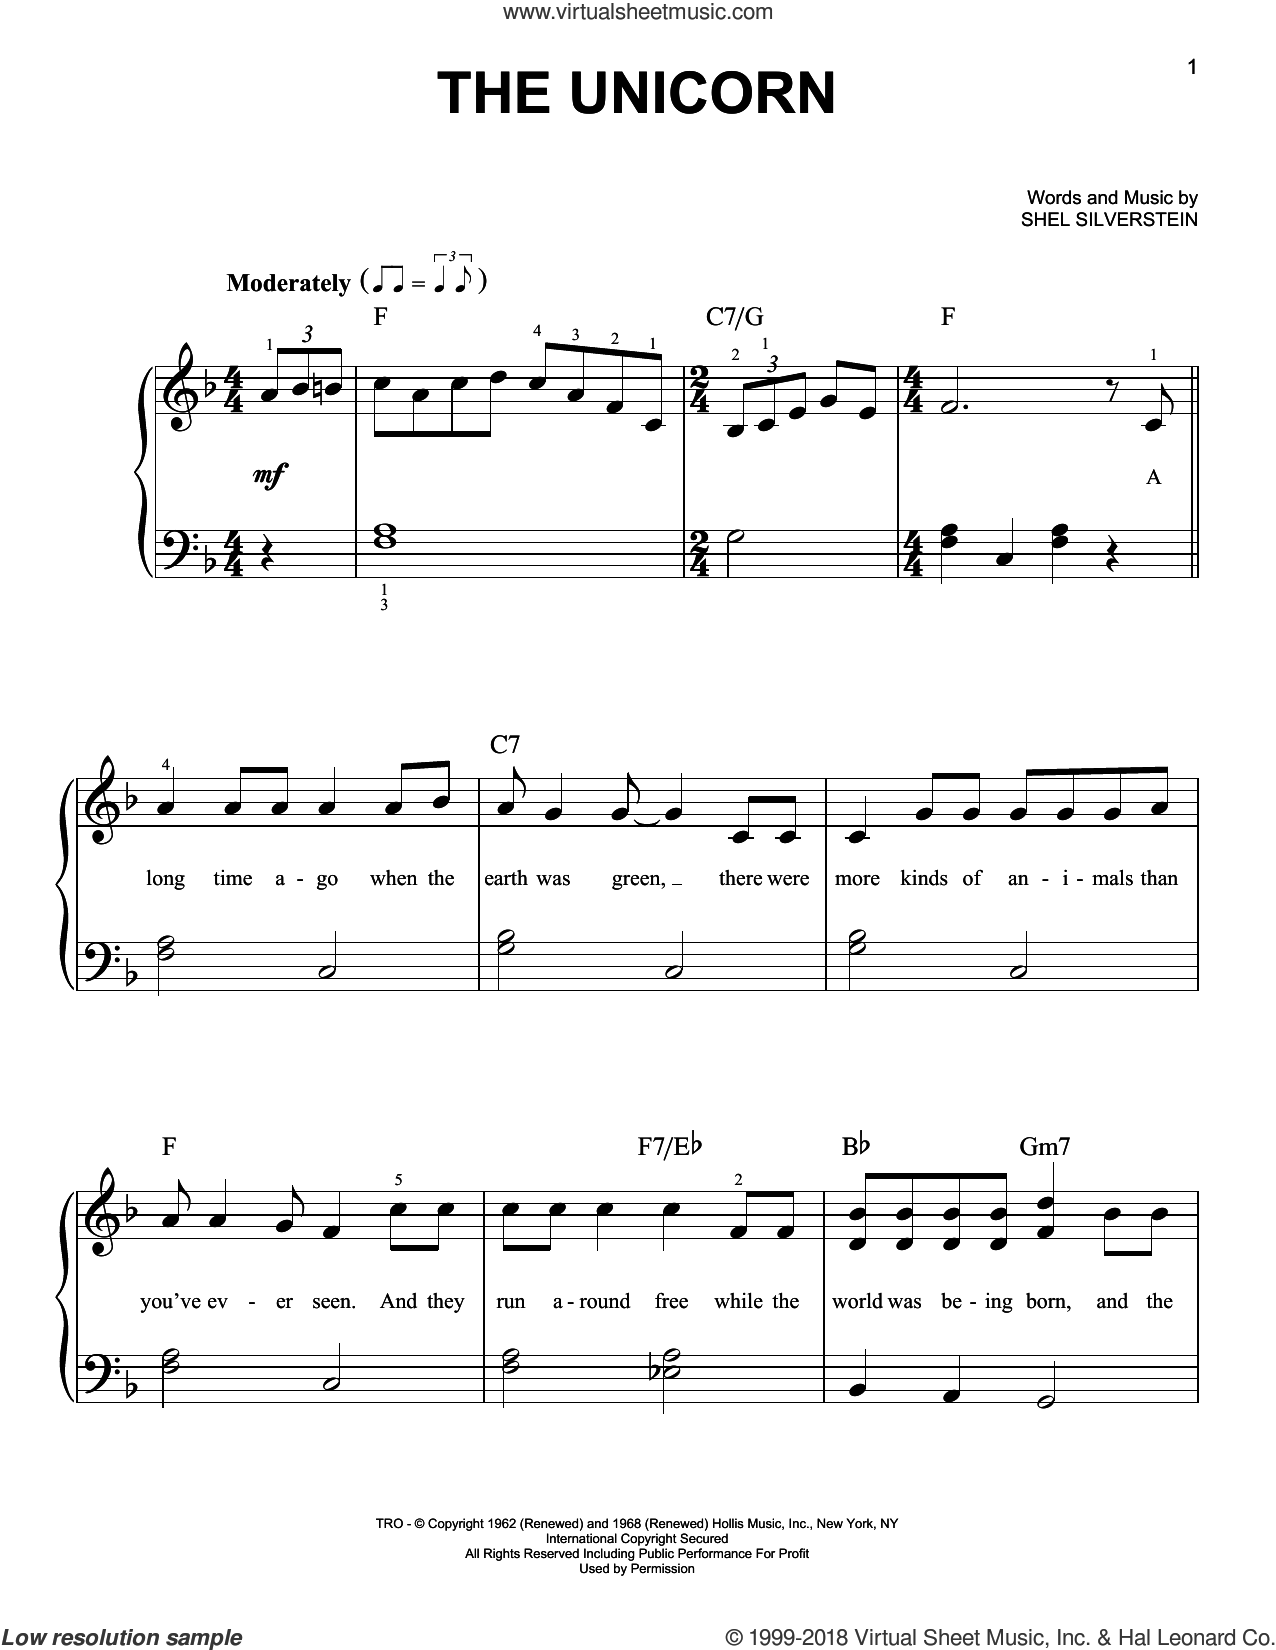 The Unicorn sheet music for piano solo by Irish Rovers and Shel Silverstein, beginner skill level